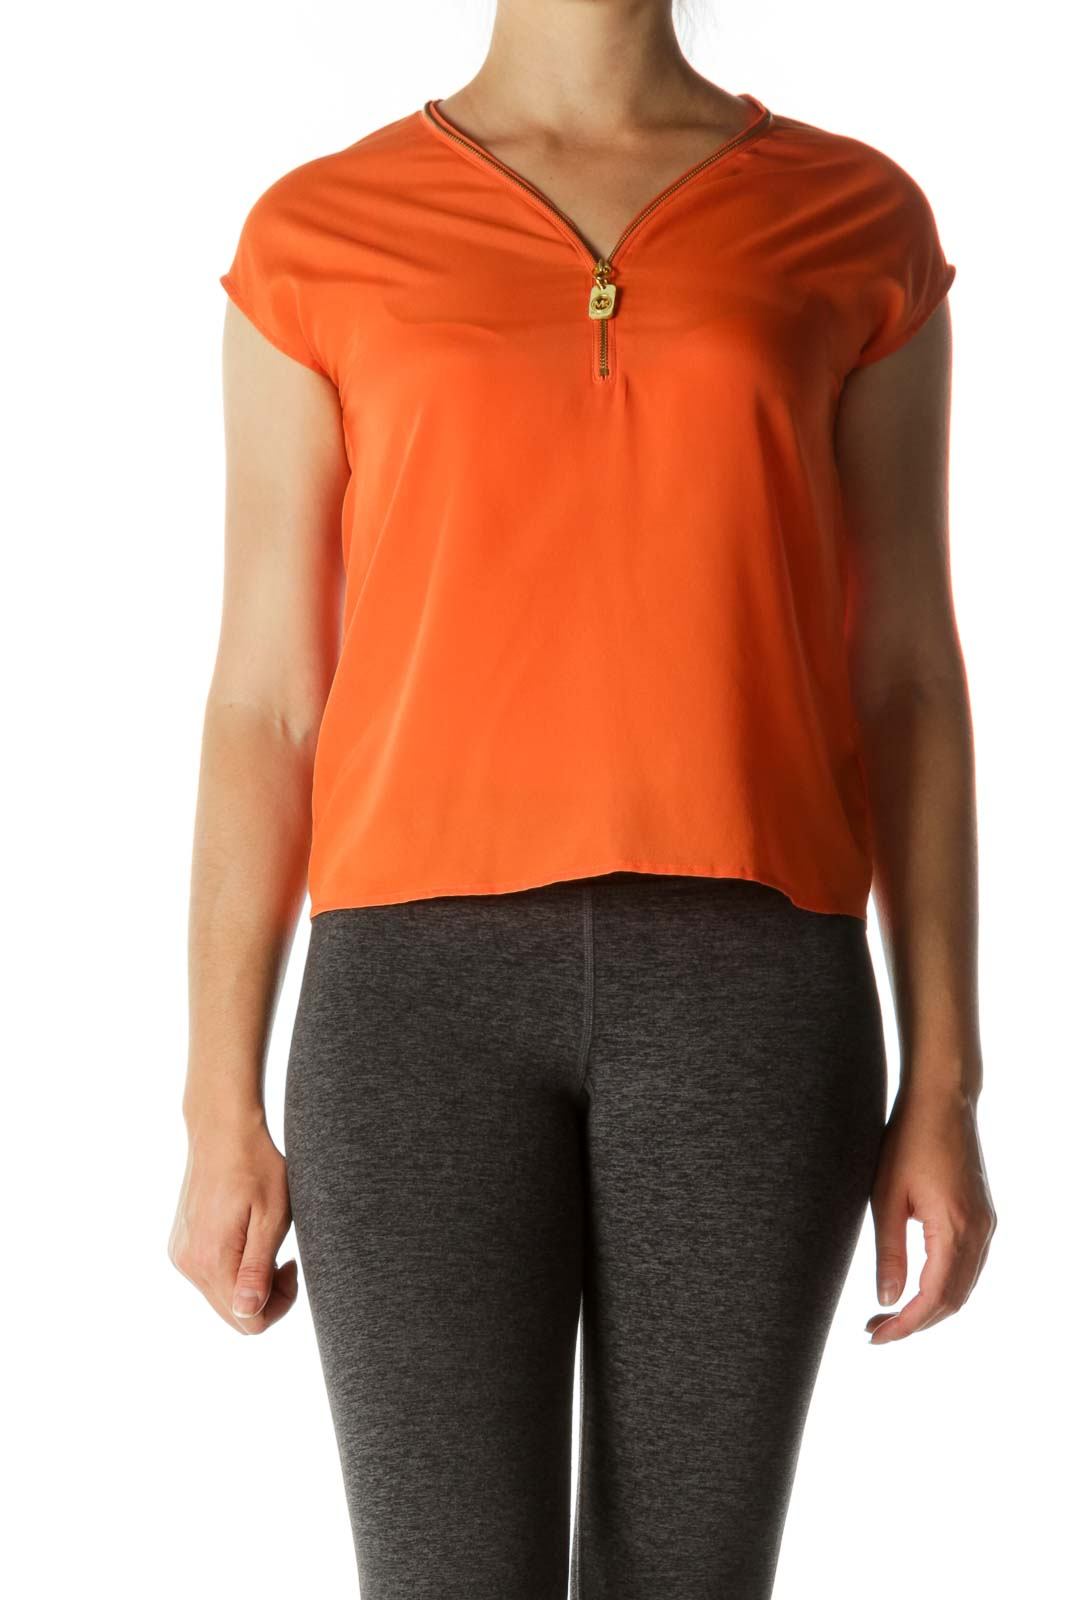 Orange Gold Hardware Zippered Cap Sleeves Top